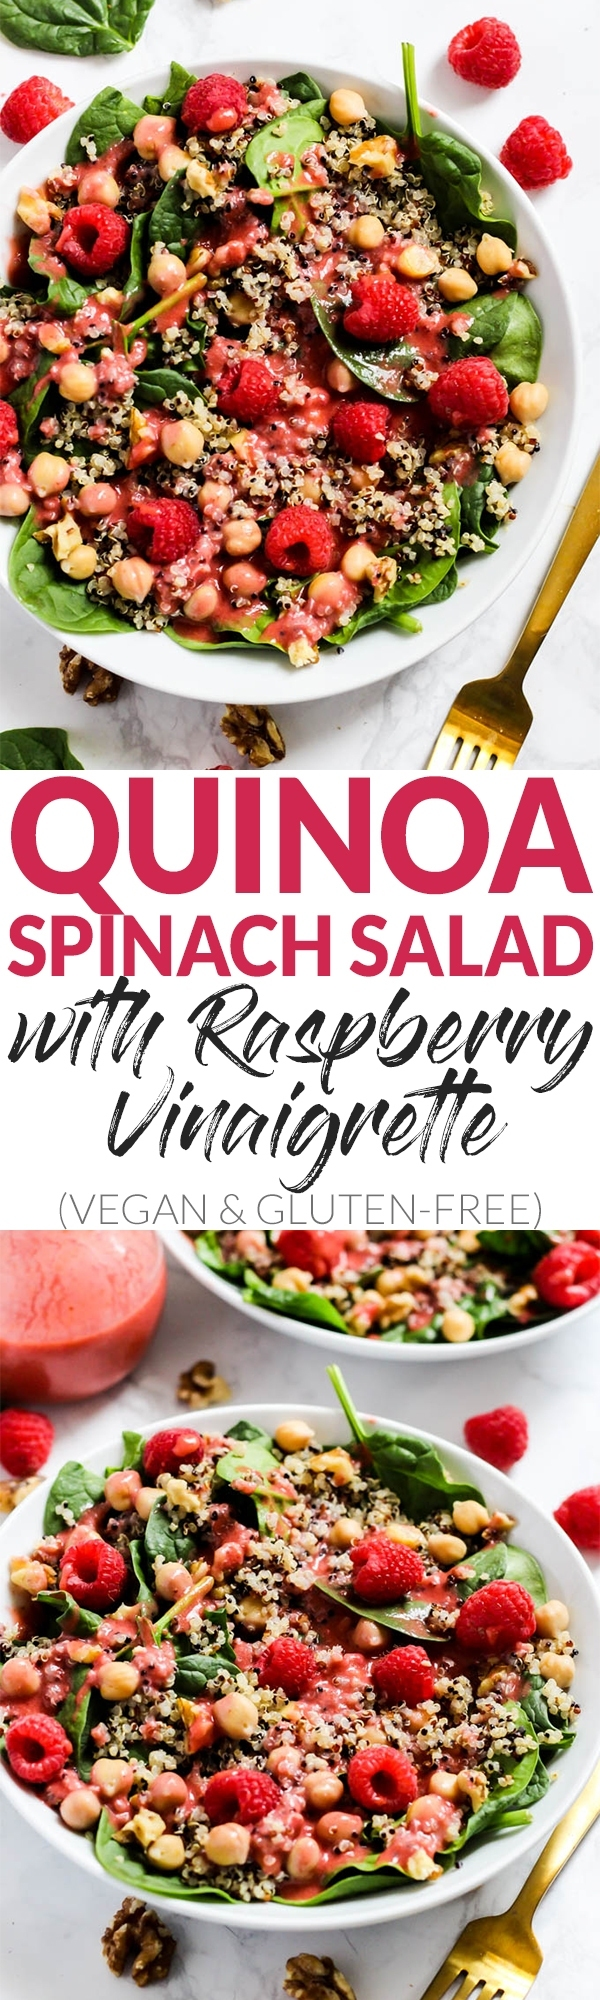 Enjoy the fresh flavors of the season with this fruity Quinoa Spinach Salad with Raspberry Vinaigrette! Serve it as a side or a meal. Vegan & gluten-free!